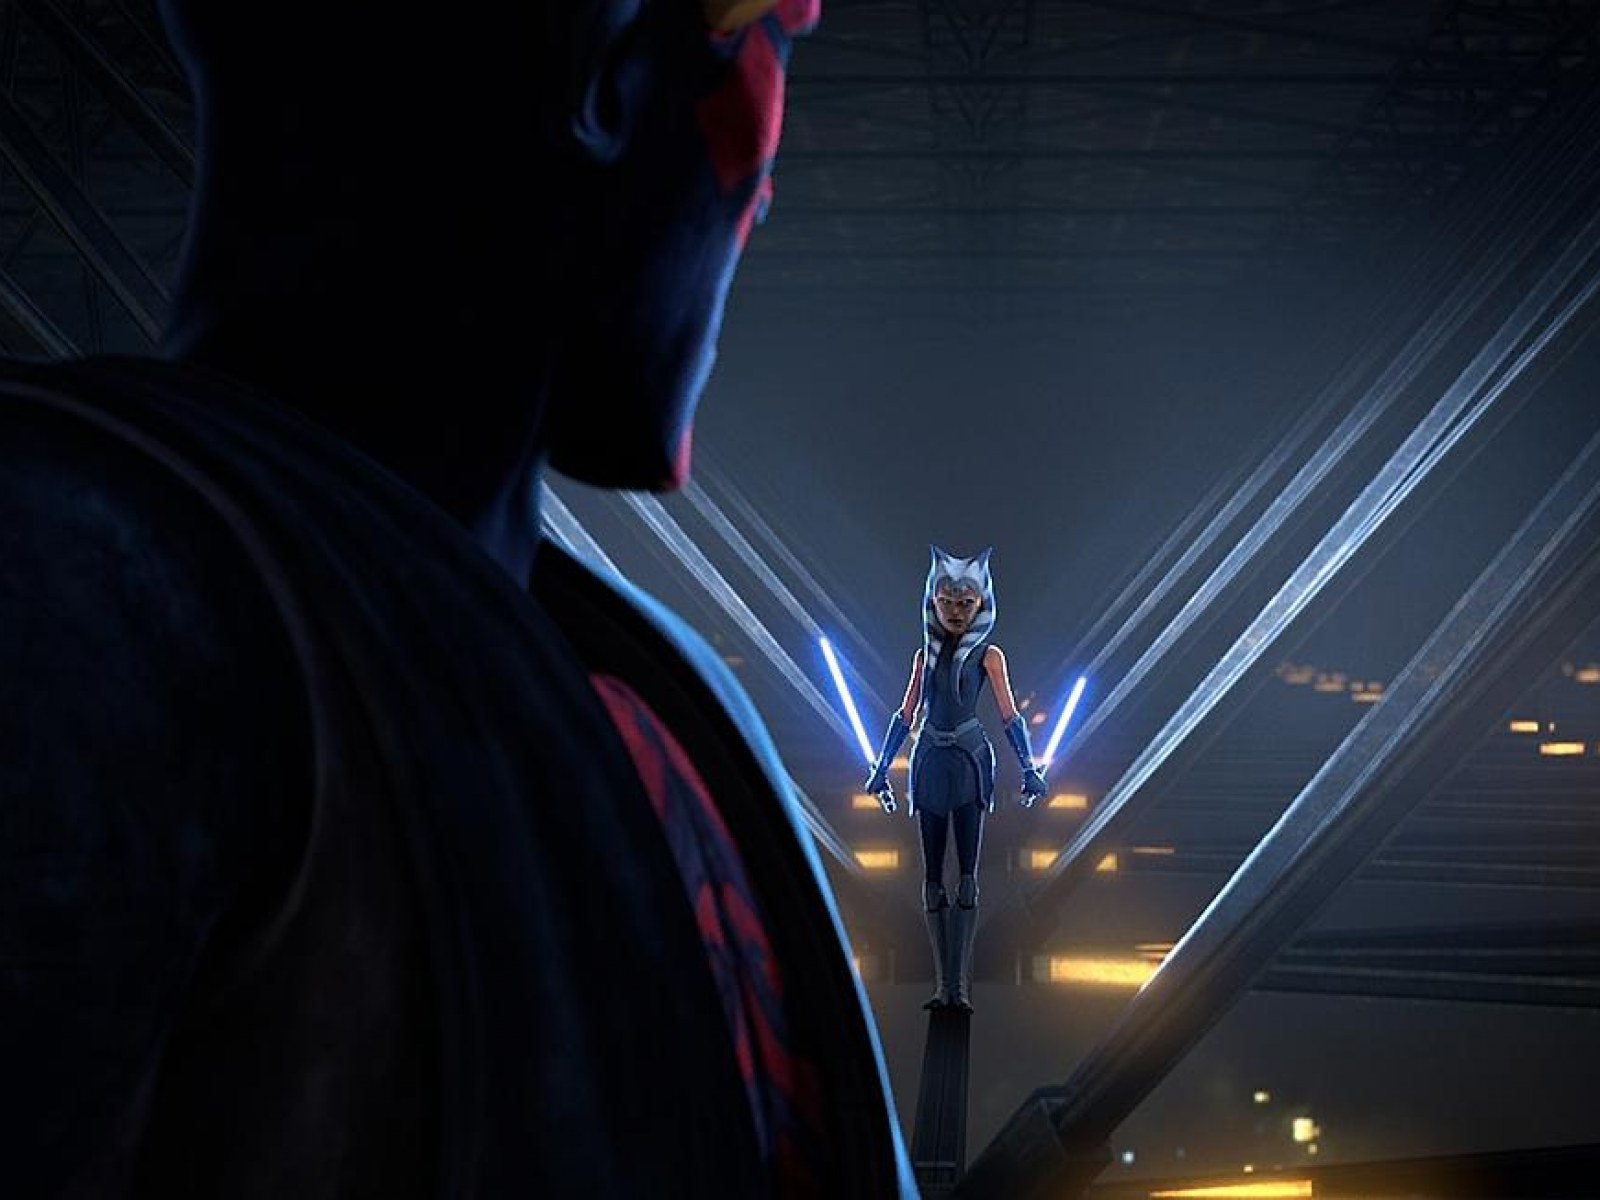 Star Wars The Clone Wars Here Are The Episodes You Need To Watch For Season 7